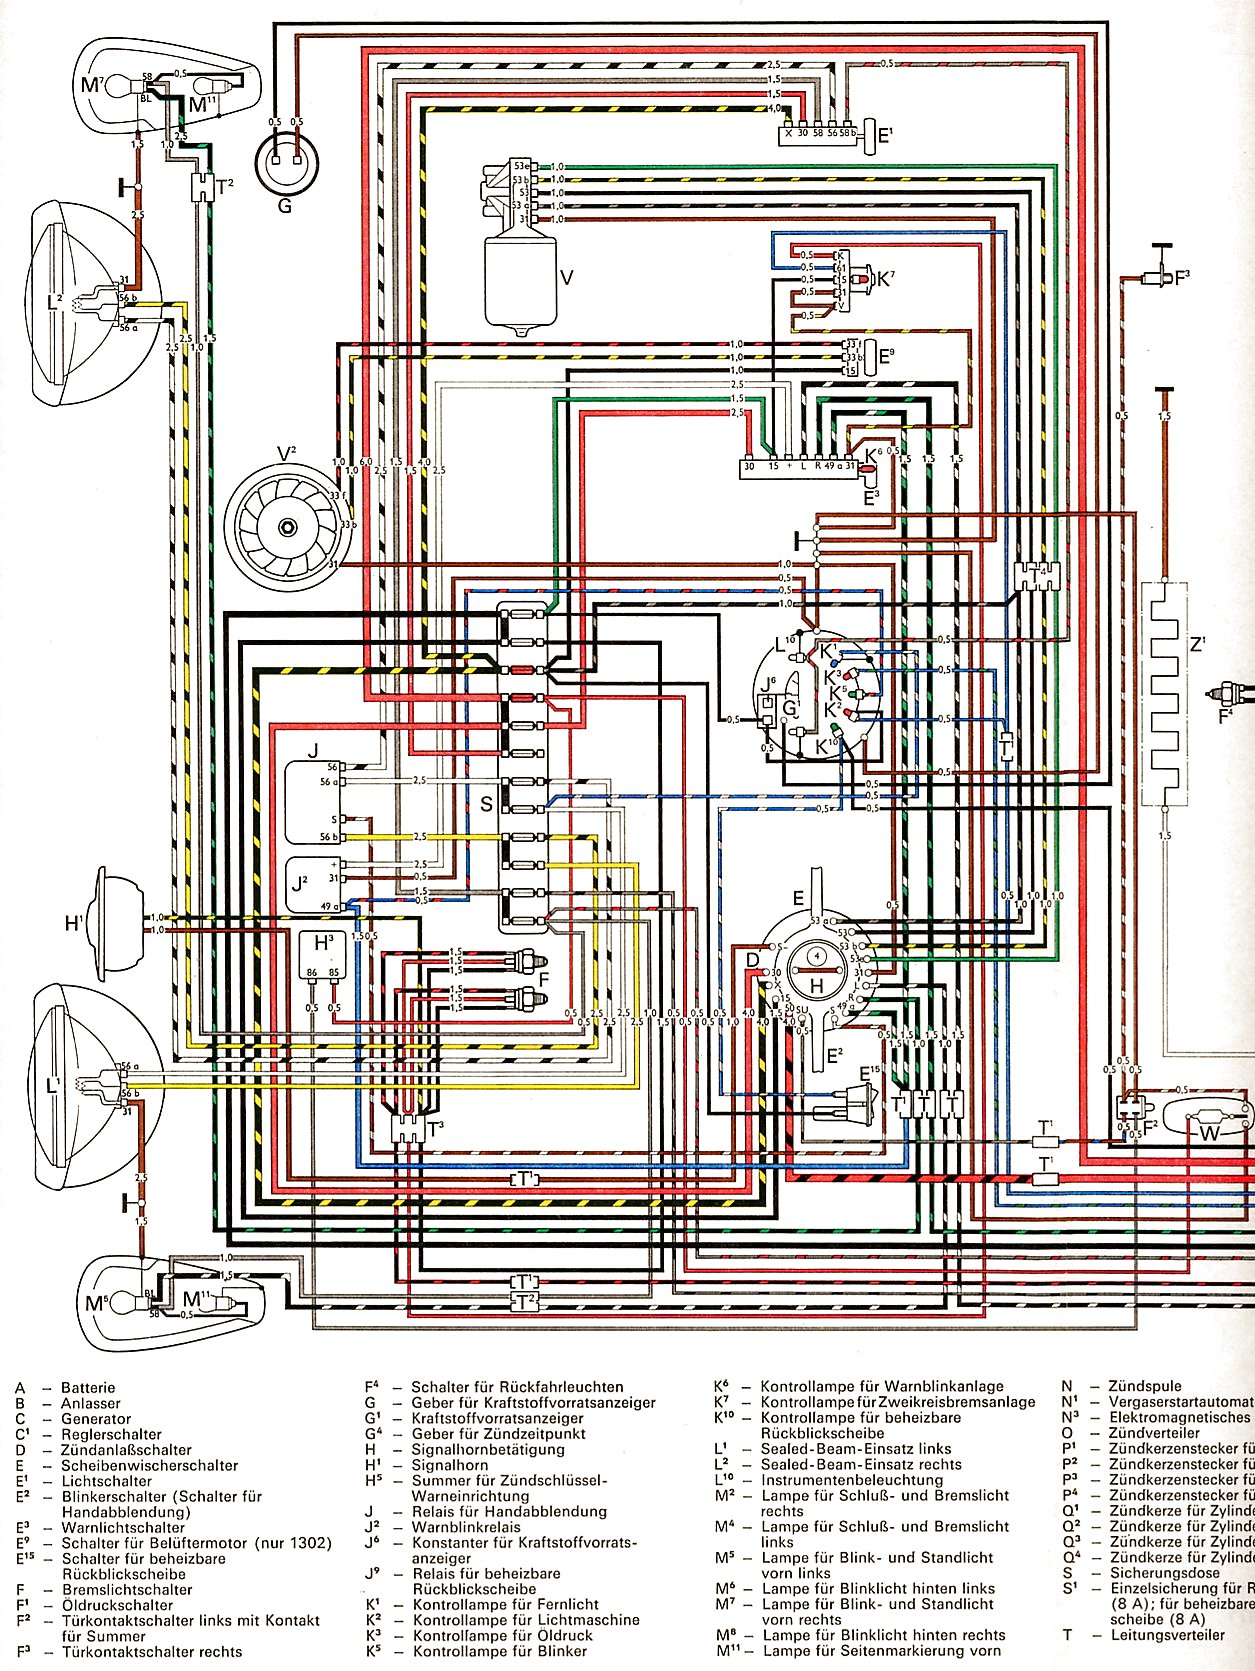 1300_and_1302_USA_from_August_1971 1 wiring diagram shoptalkforums com 73 vw beetle wiring diagram at bakdesigns.co